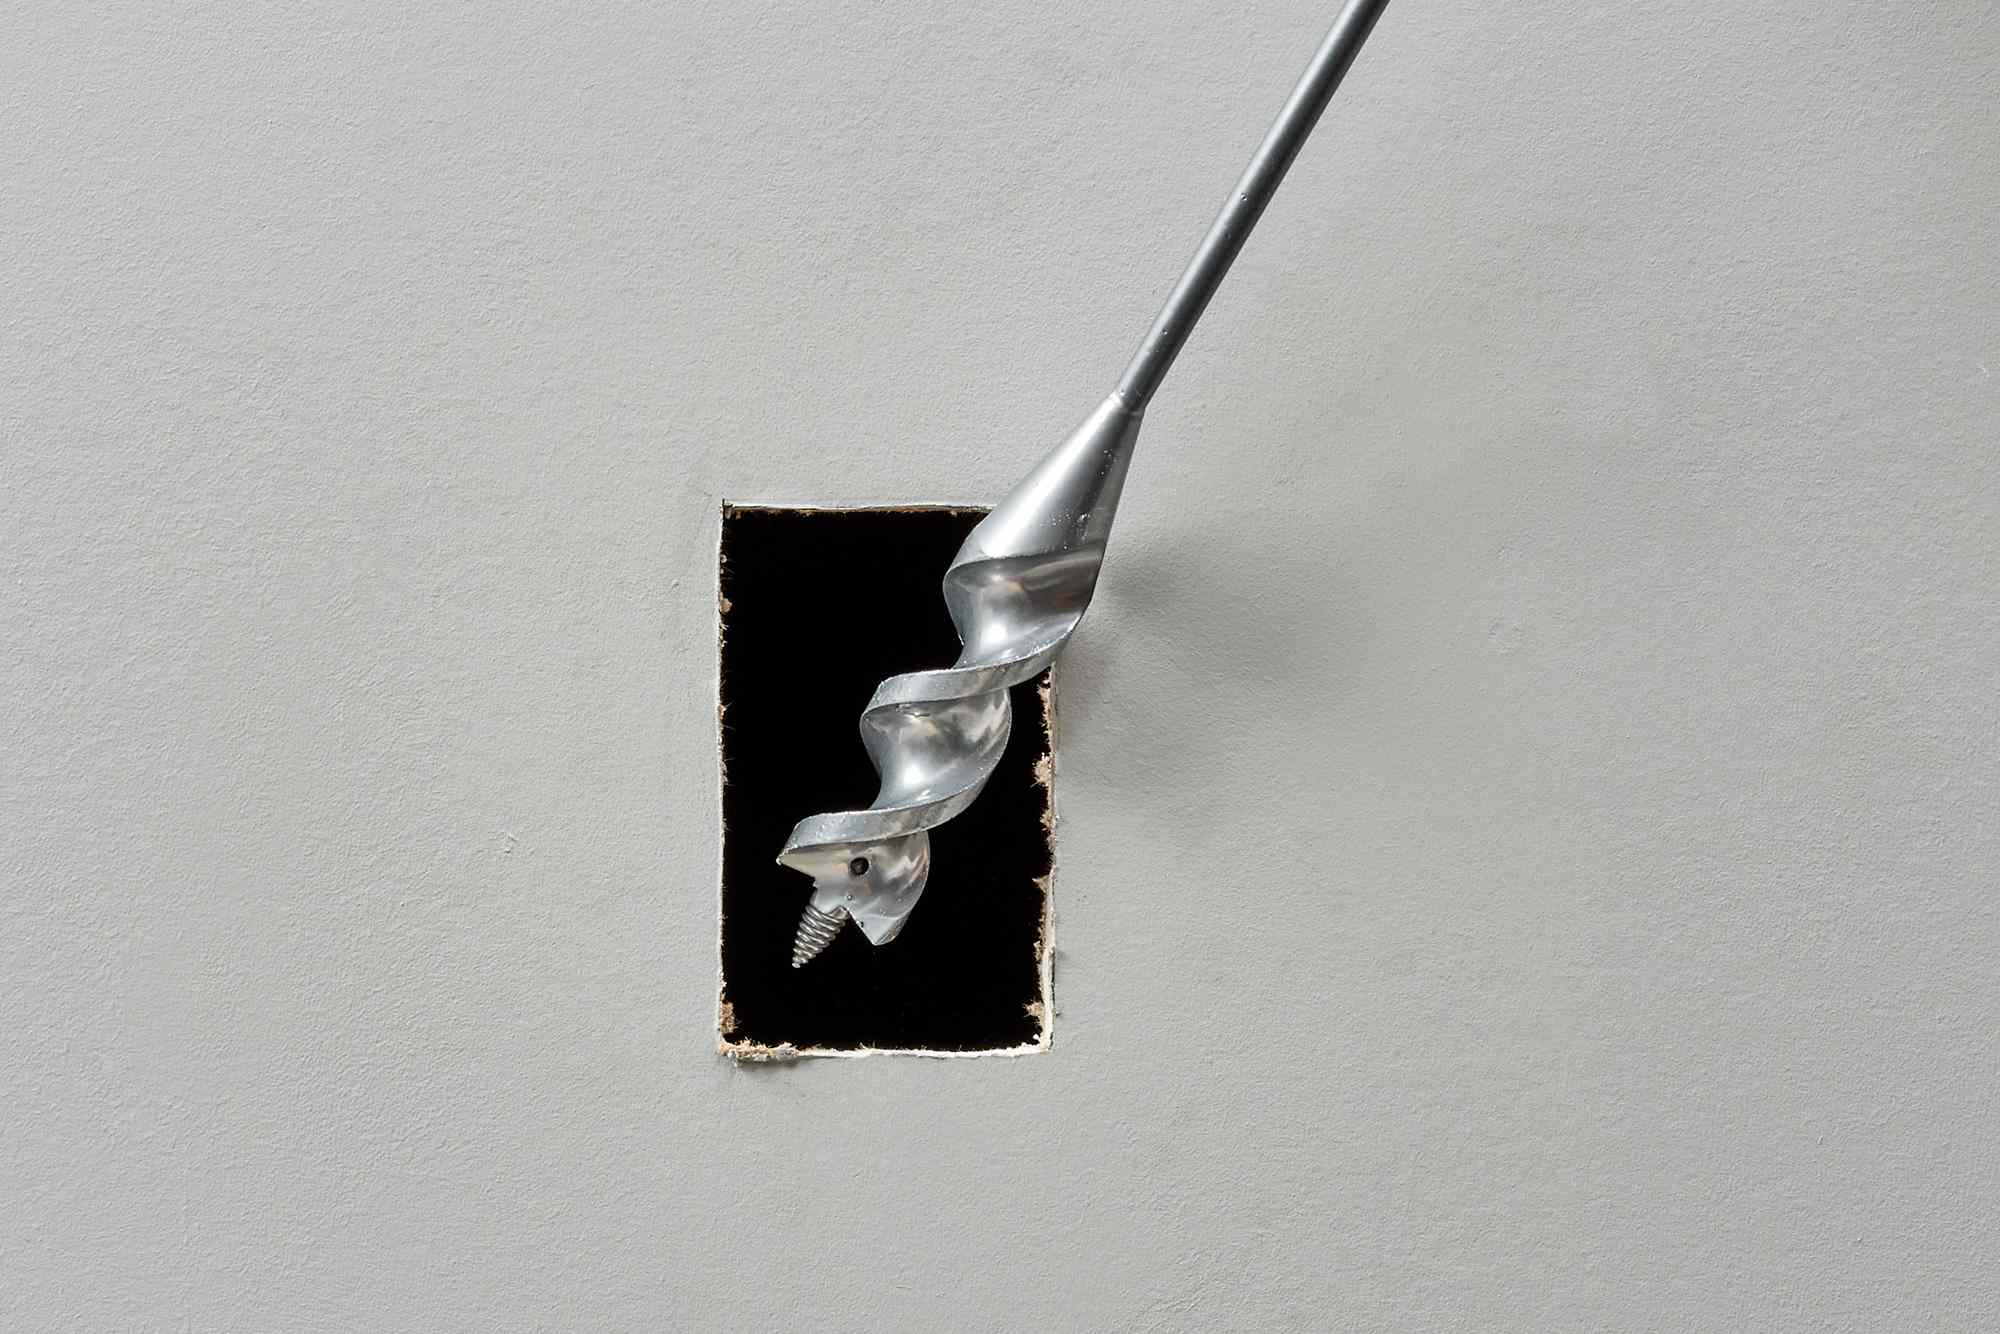 Spade bit drilling access hole in drywall hole